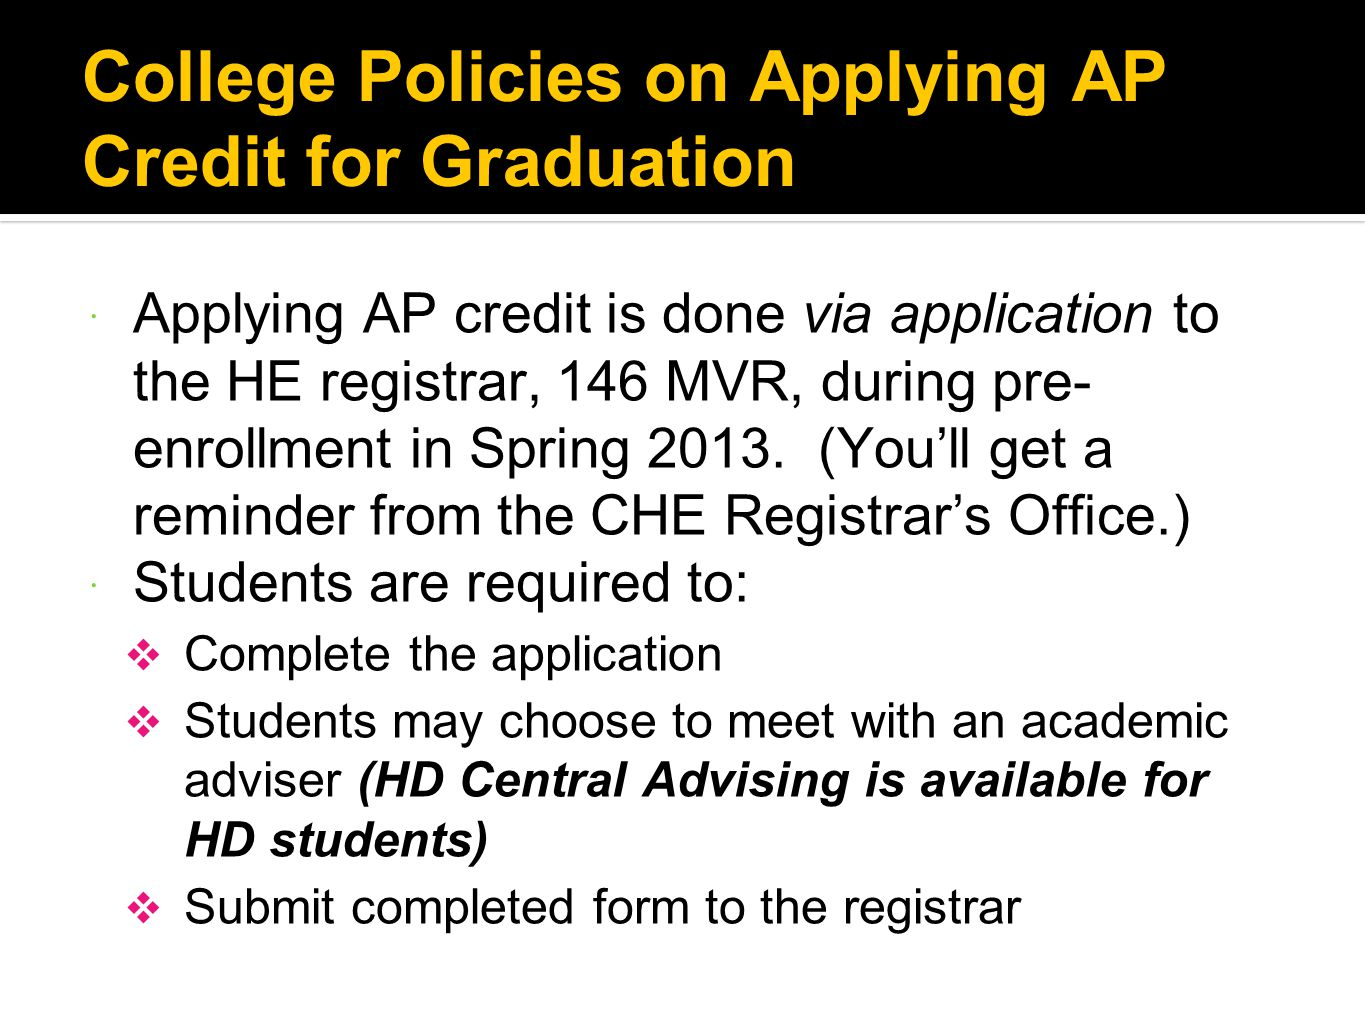 College Policies on Applying AP Credit for Graduation